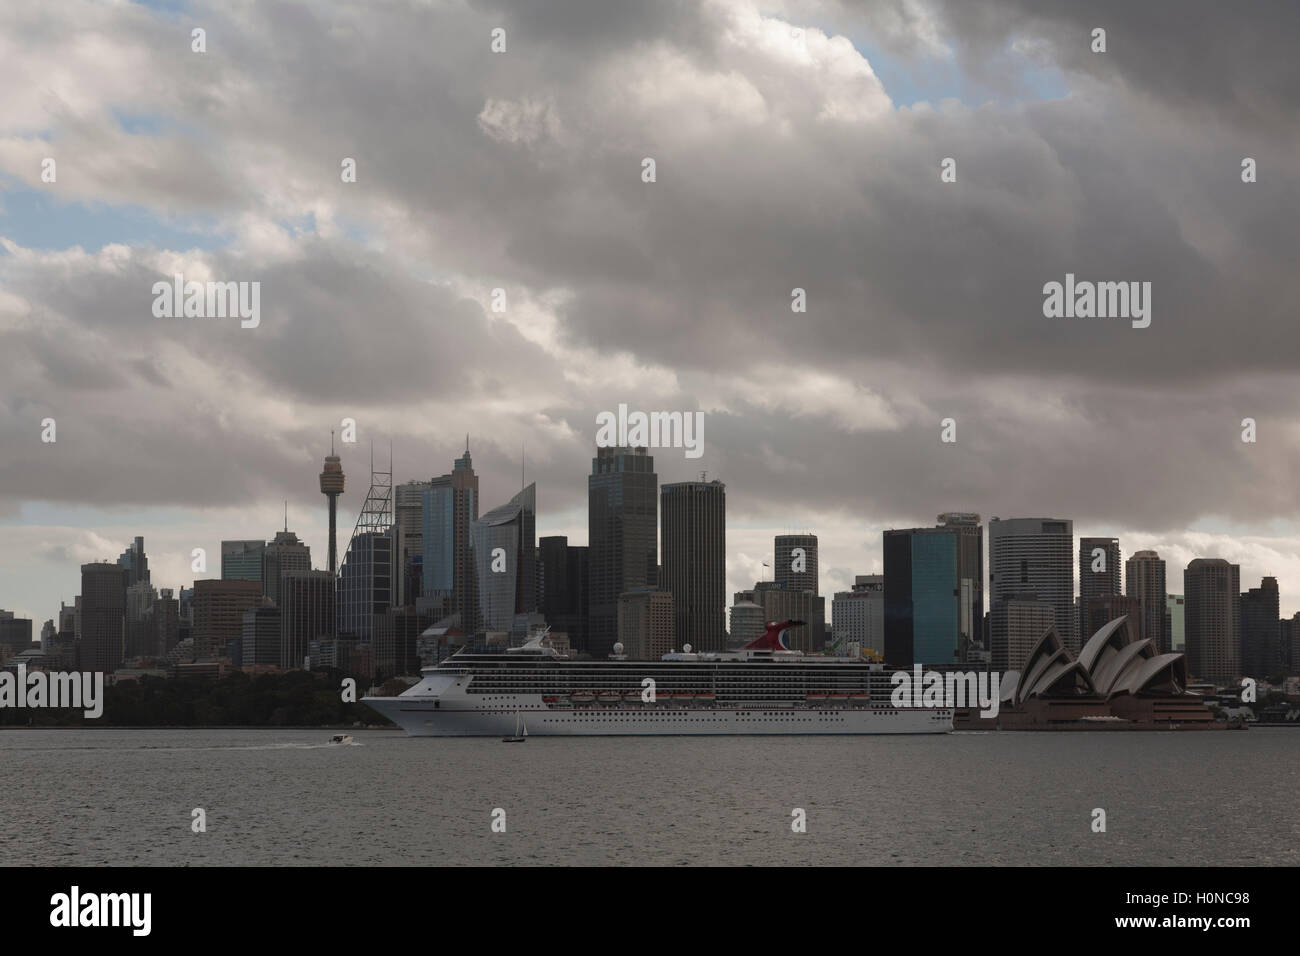 The Carnival Spirit Cruise Ship passes directly in front of the Sydney CBD as she departs Sydney Australia Stock Photo